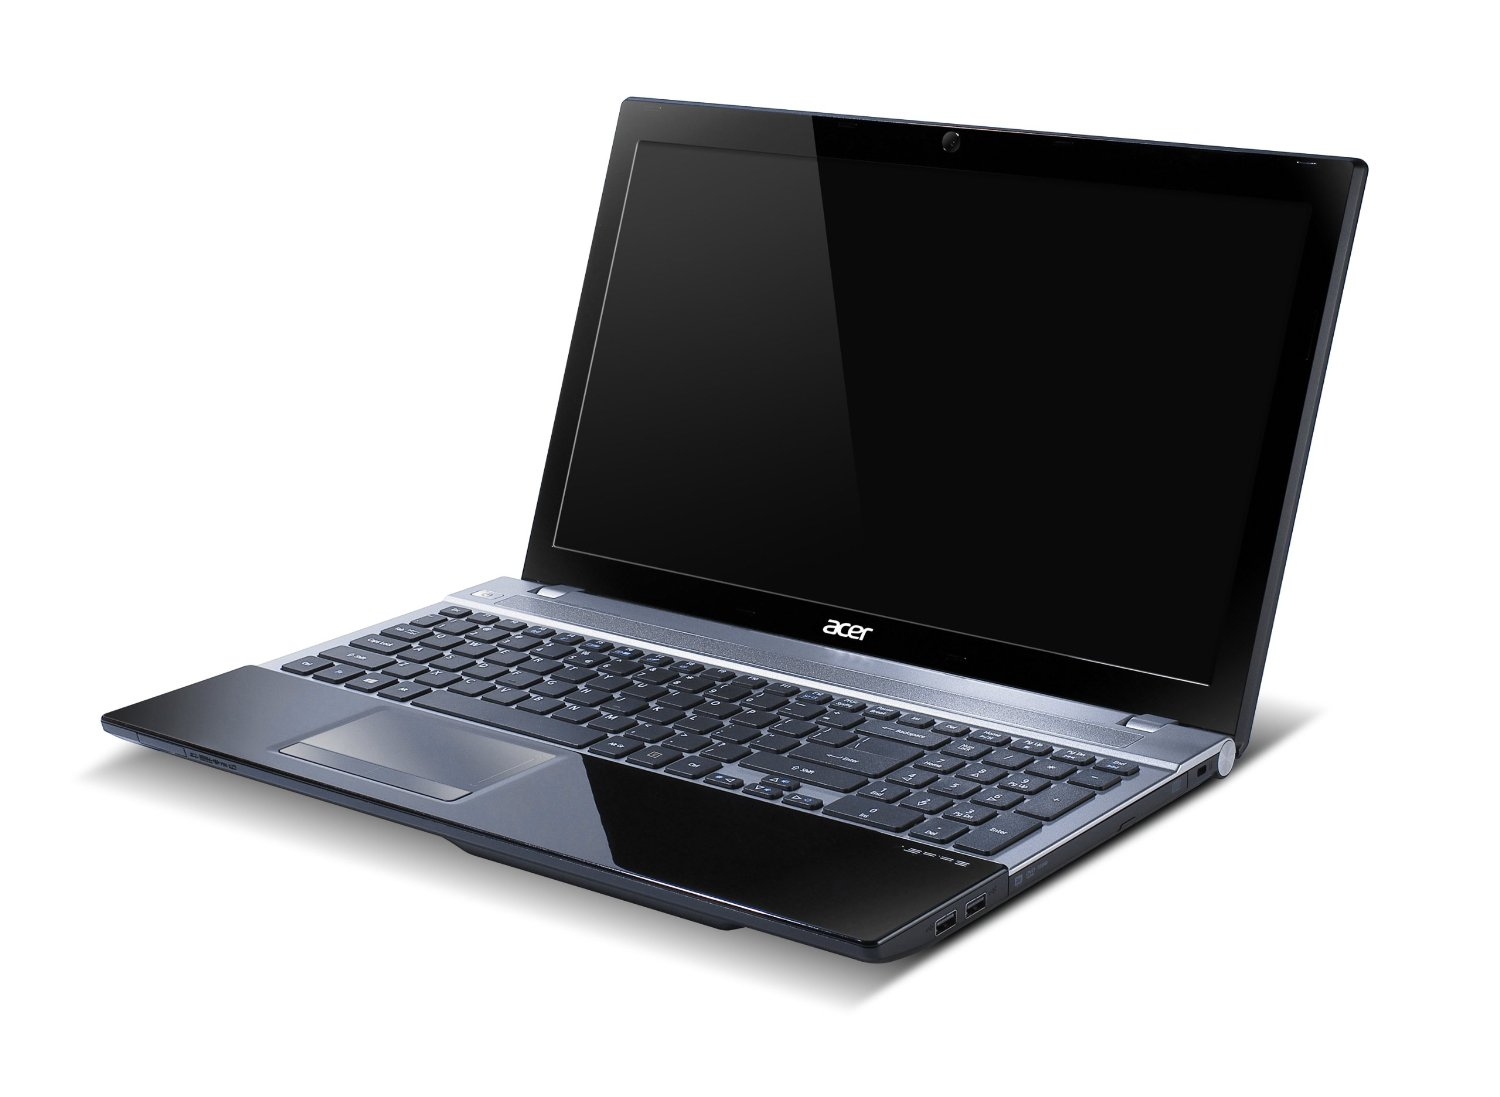 The Acer Aspire V3-571G-6622 offers one of the best value for the